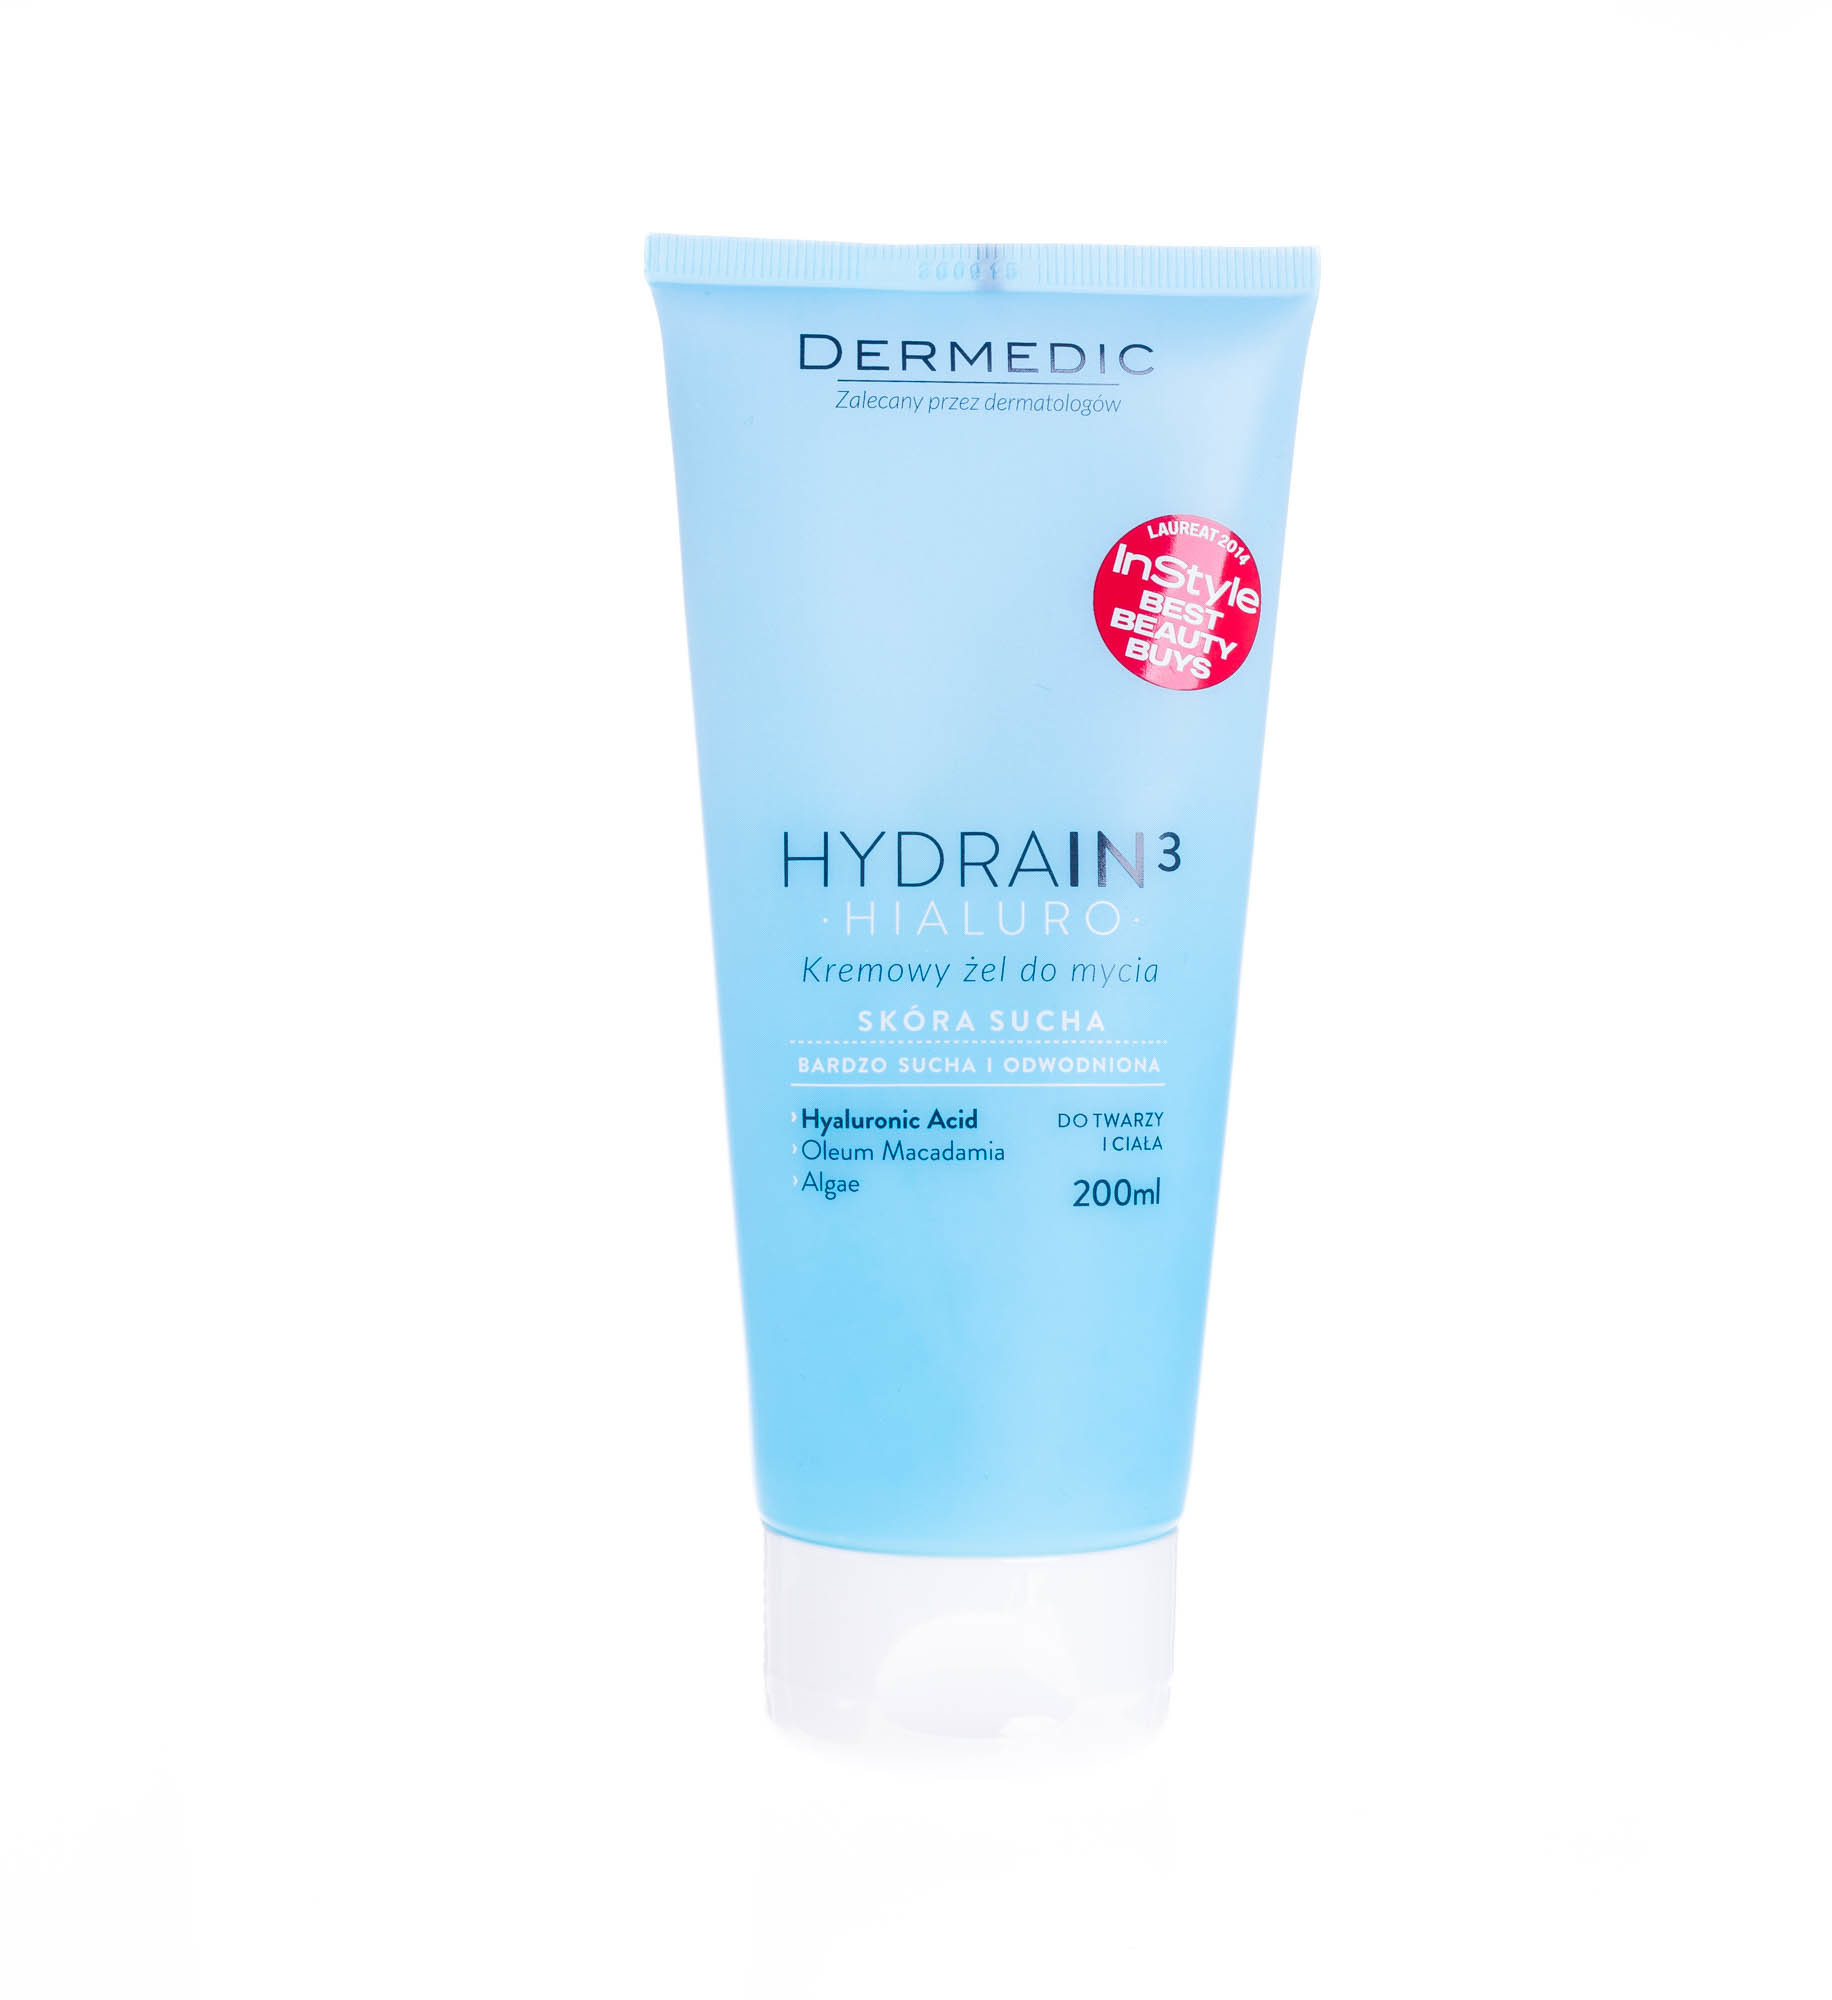 top Dermedic HYDRAIN 3 HIALURO kremowy żel do mycia 200ml